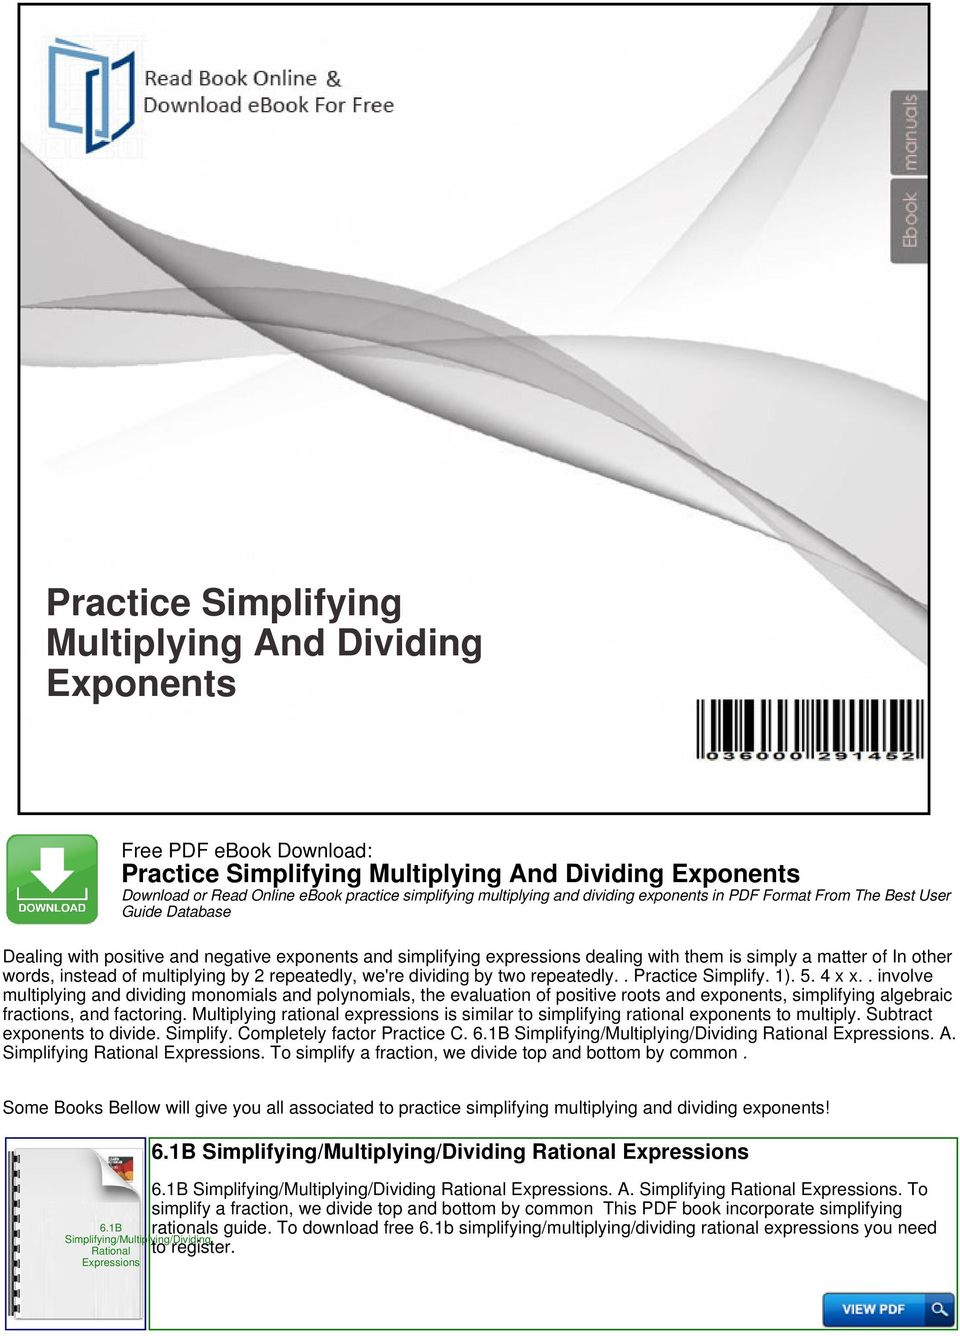 Practice Simplifying Multiplying And Dividing Exponents - PDF